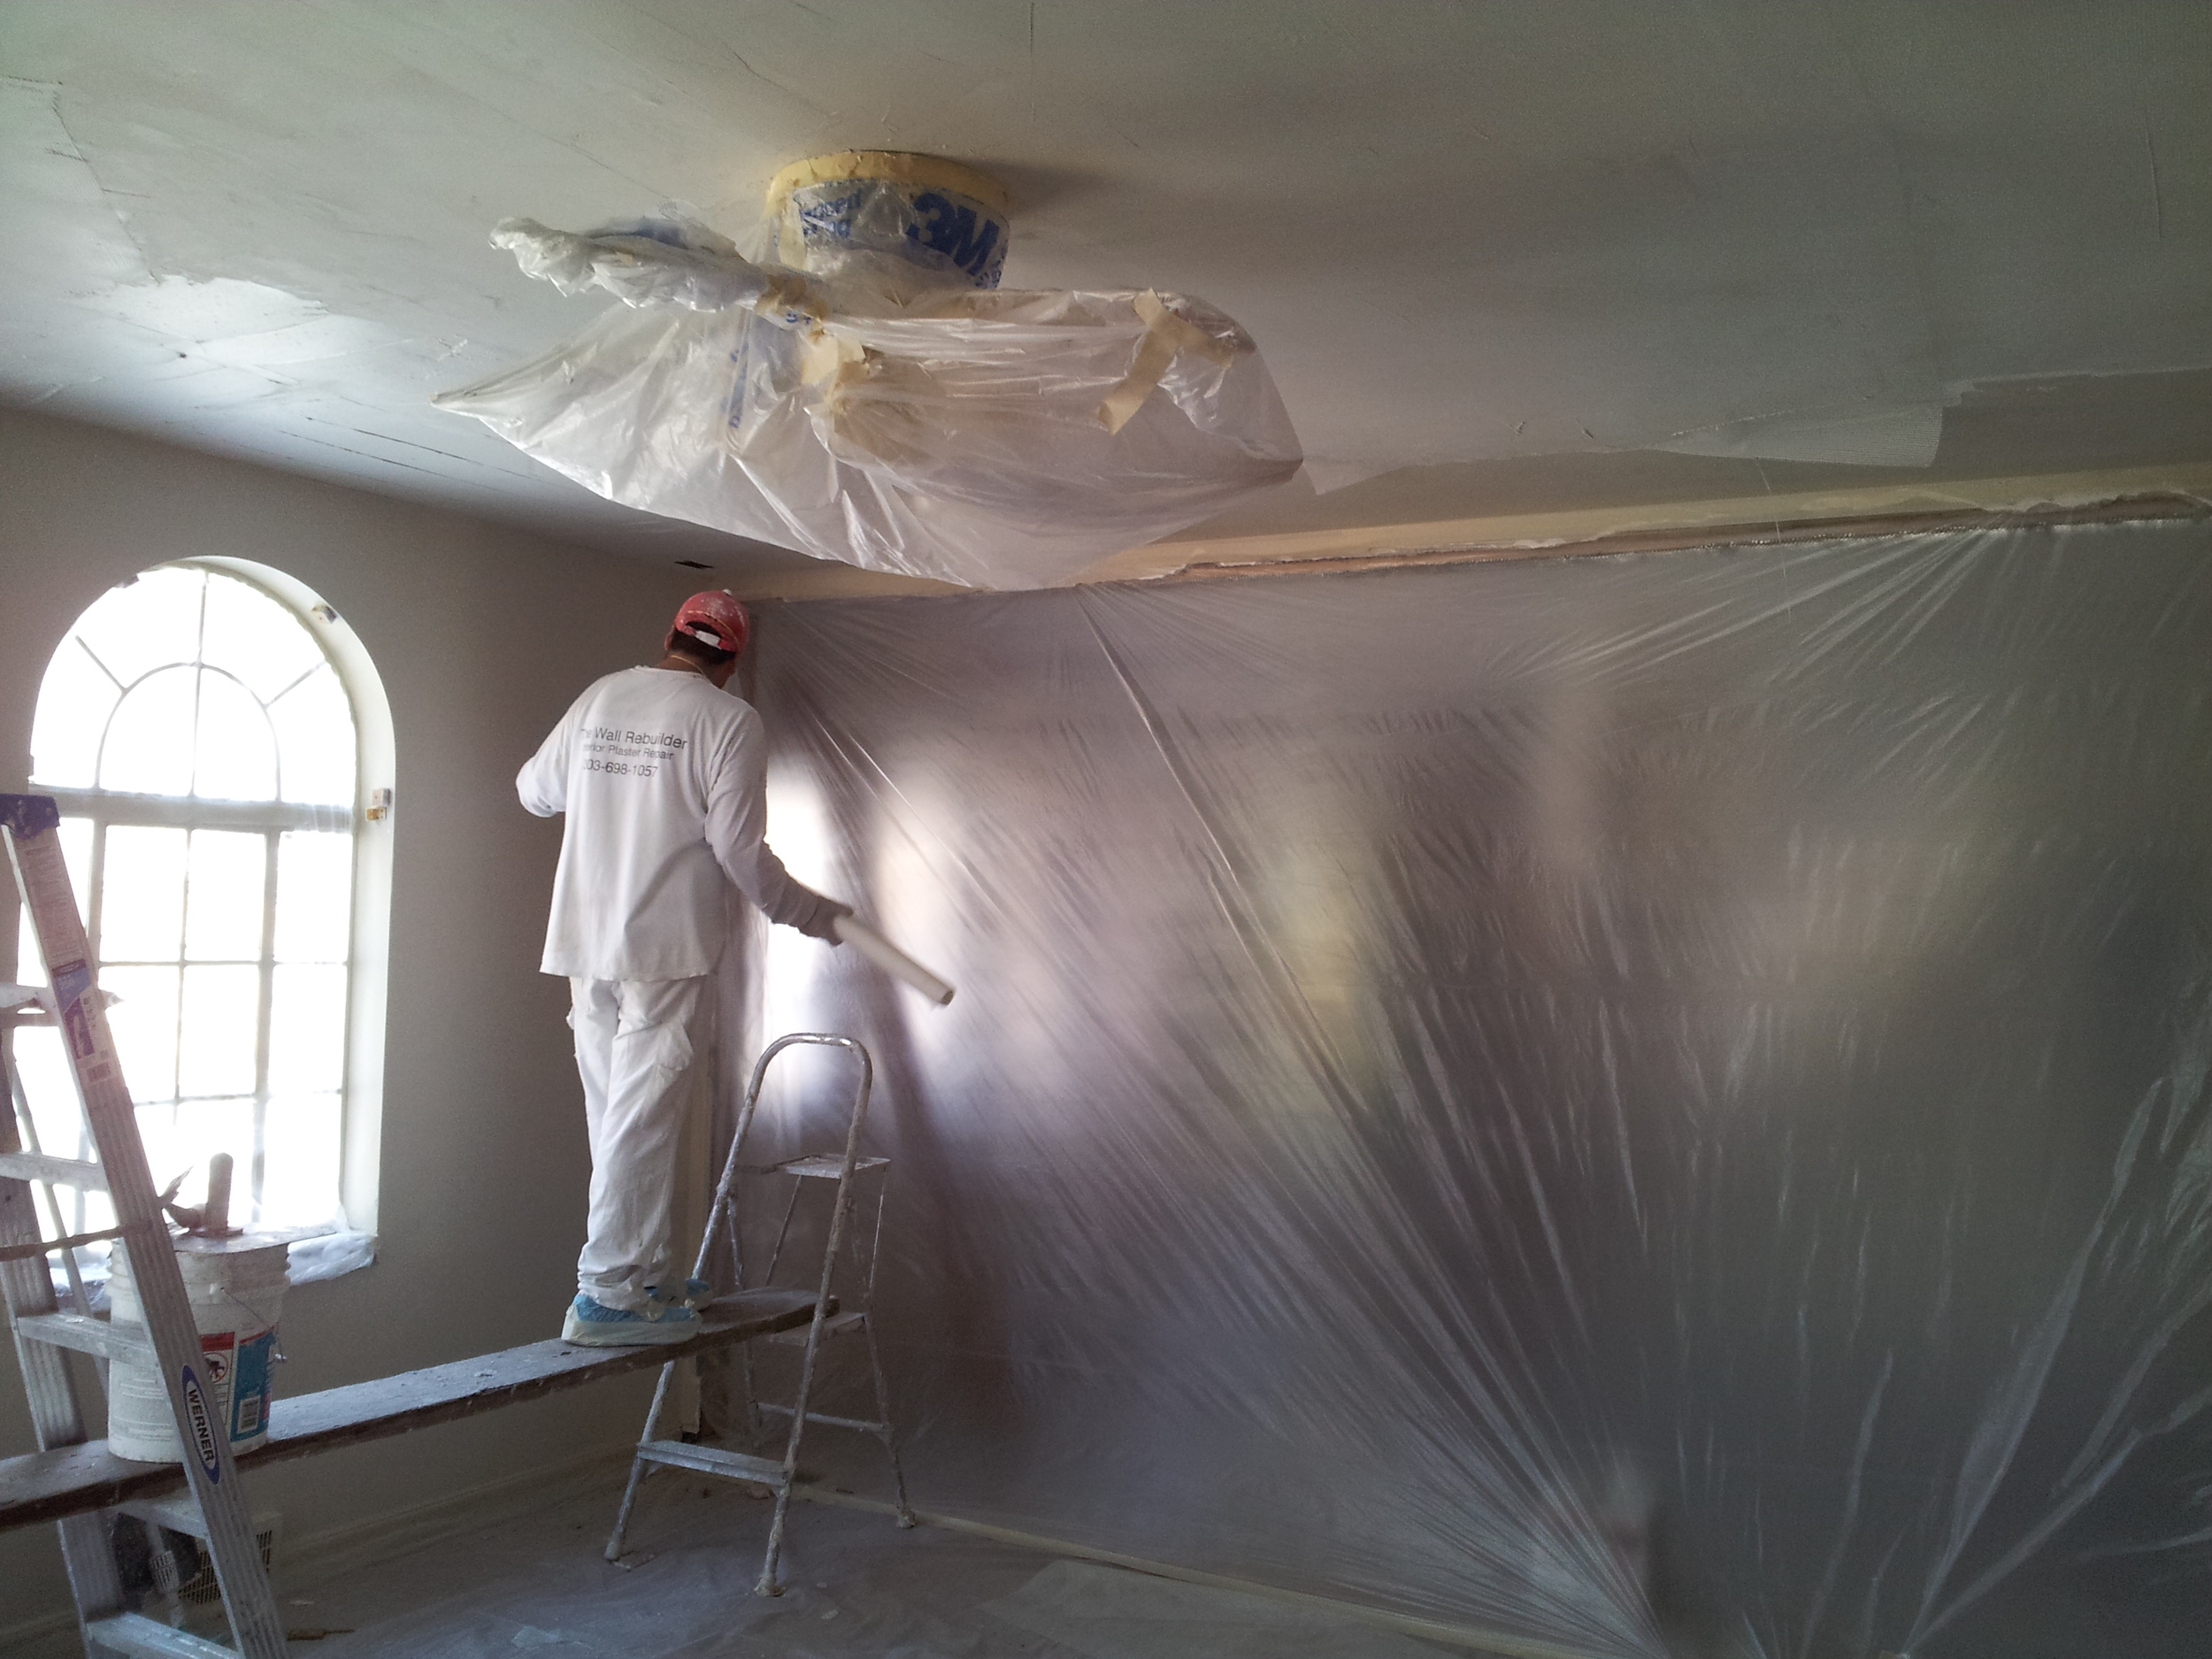 Re-skimming and mesh reinforcing lath and plaster ceilings